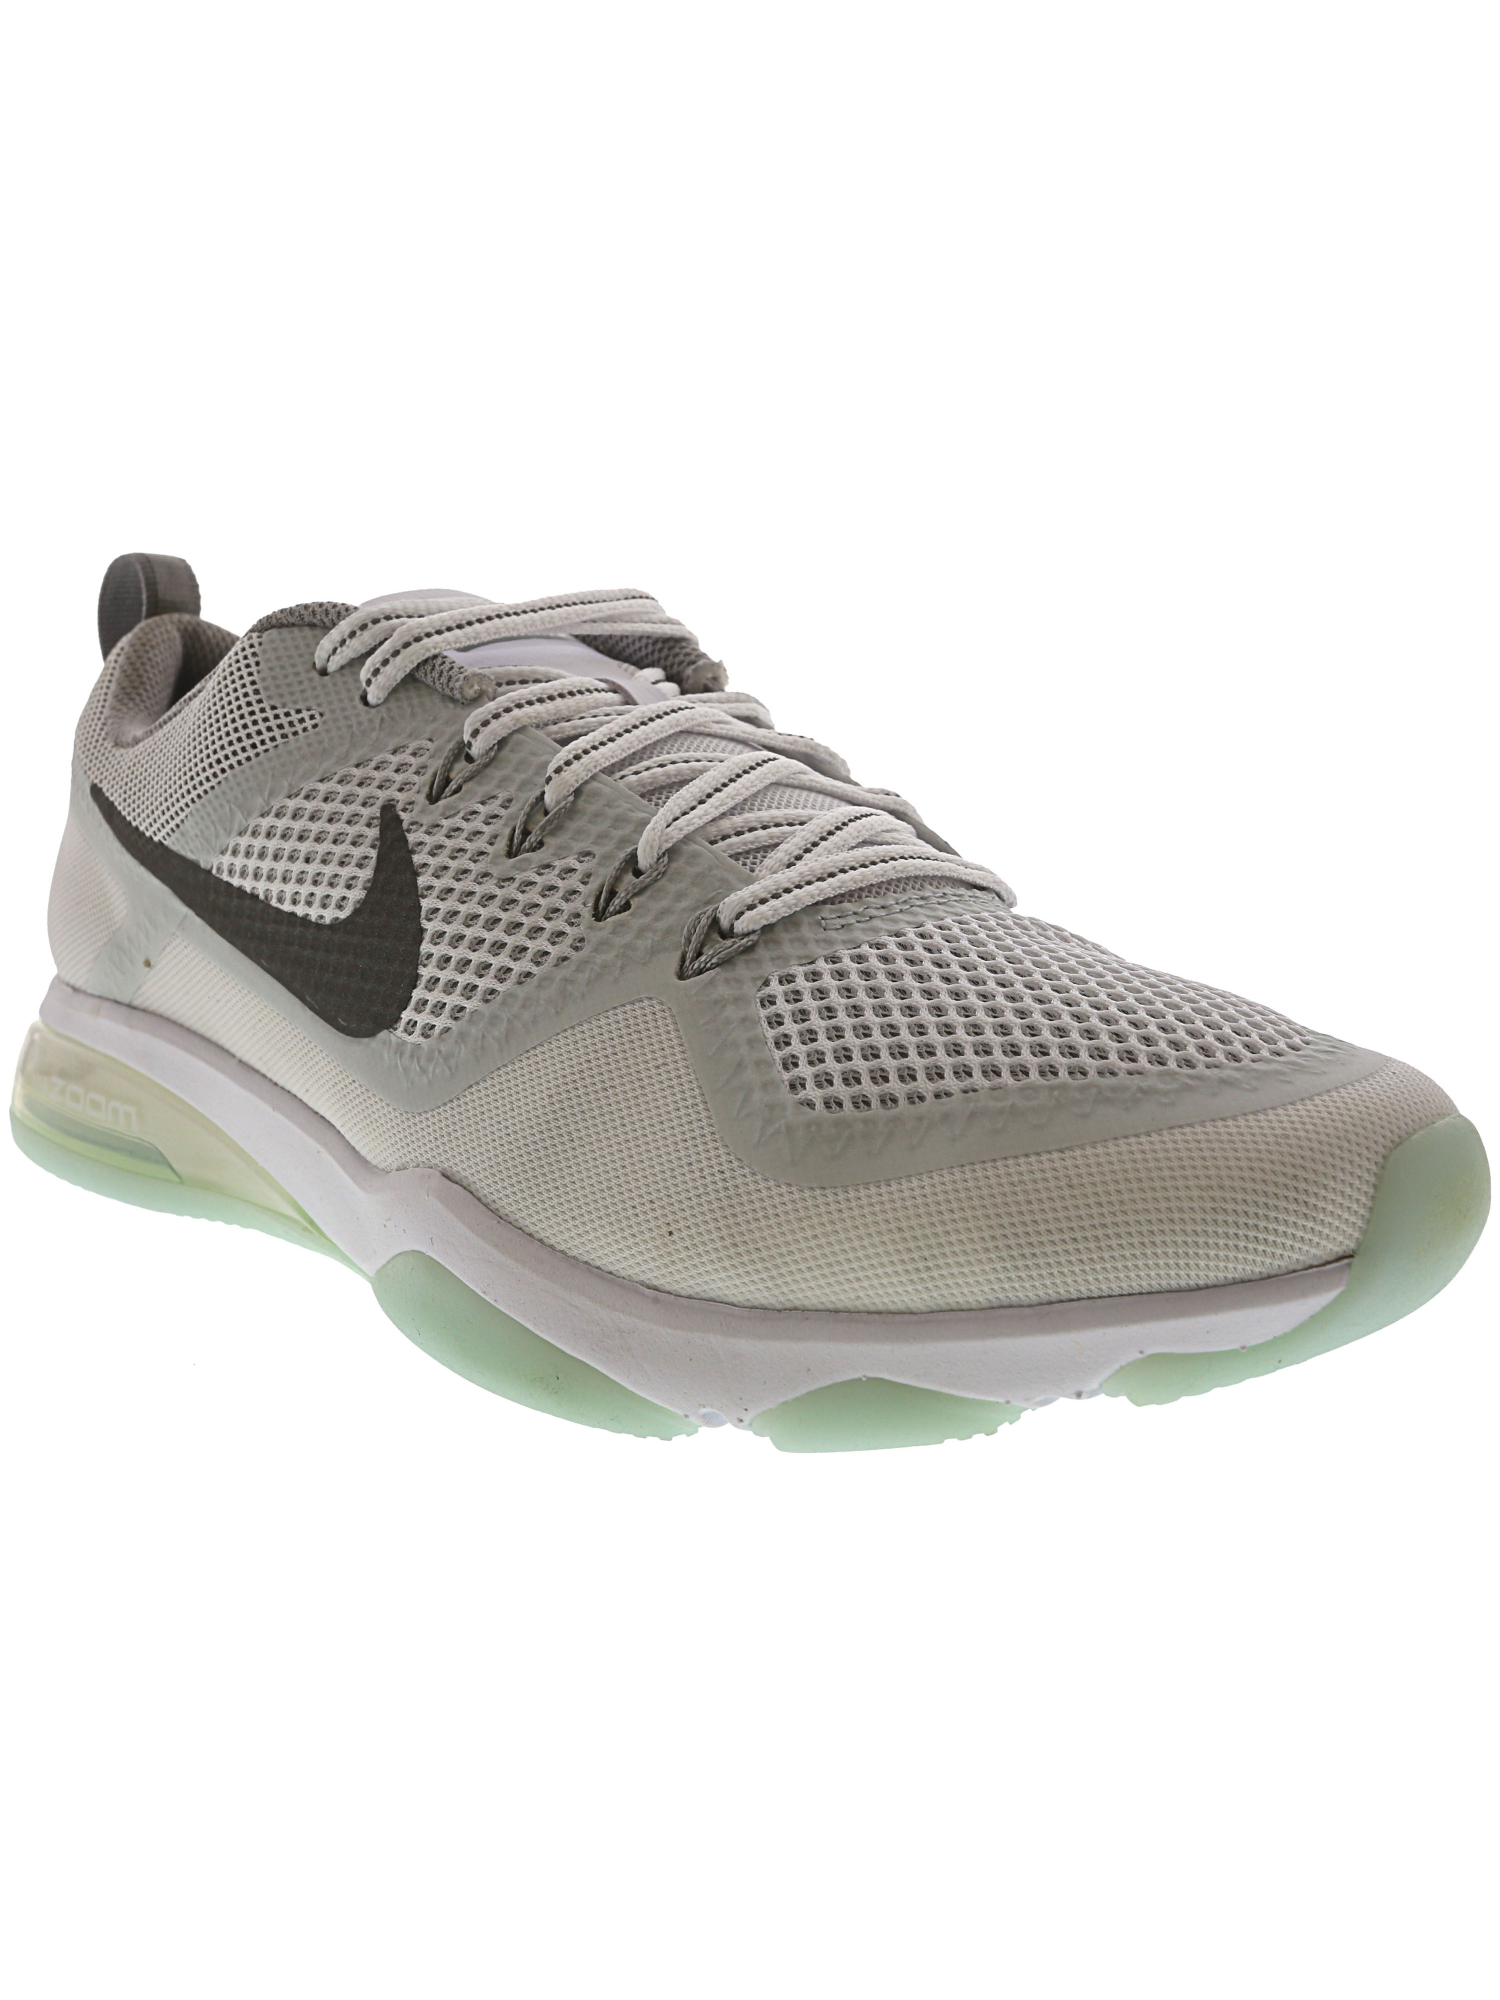 Nike Nike Nike Women's Air Zoom Fitness Reflect Ankle-High Training shoes 9c87bc